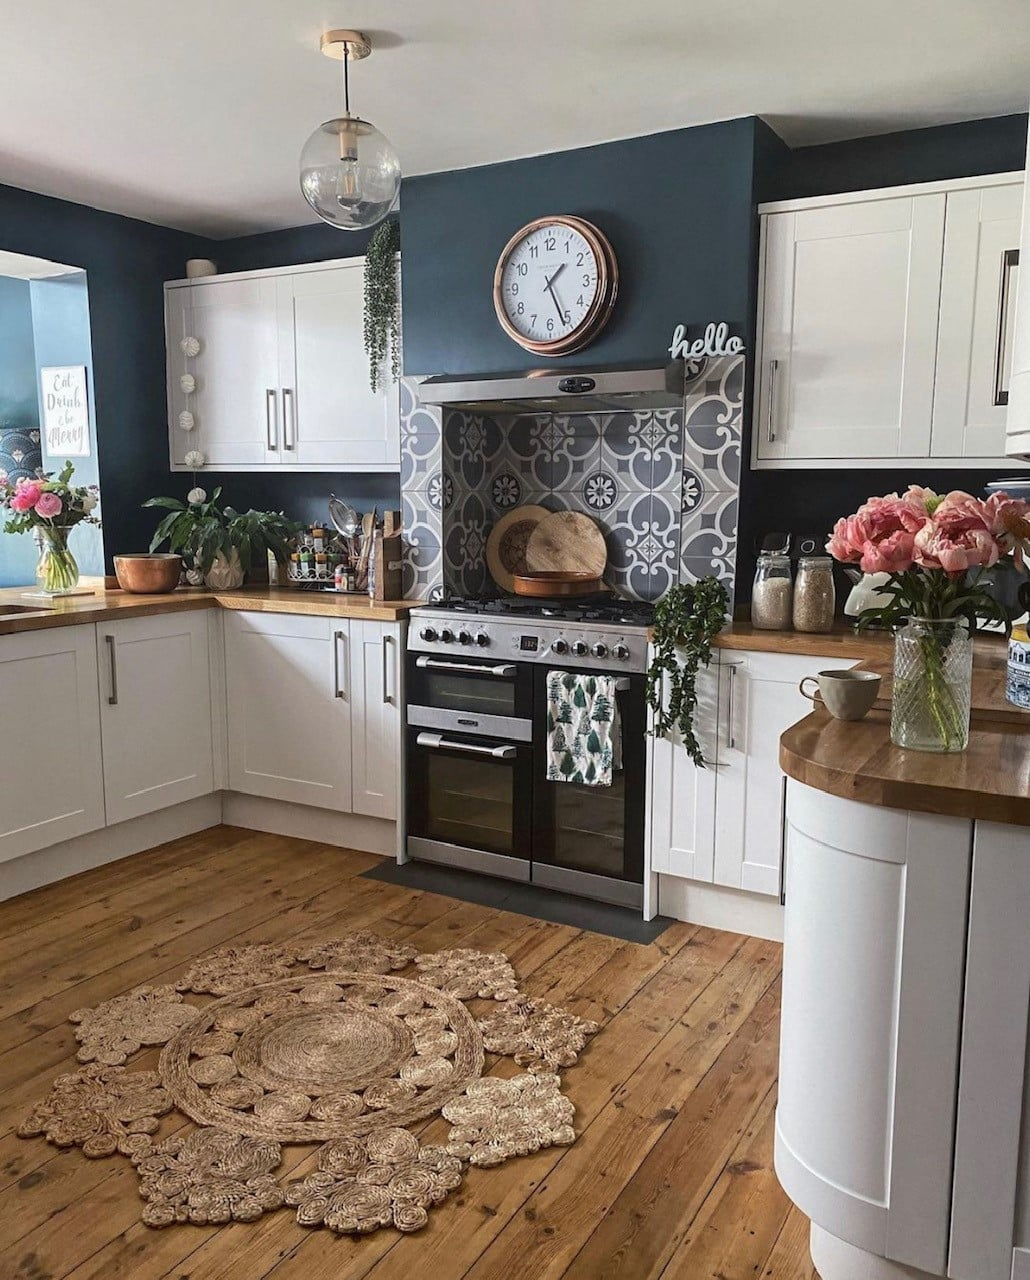 Newly renovated kitchen with wooden floors, range cooker in the chimney, hague blue farrow and ball walls, howden kitchen, tiled back splash and jute rug